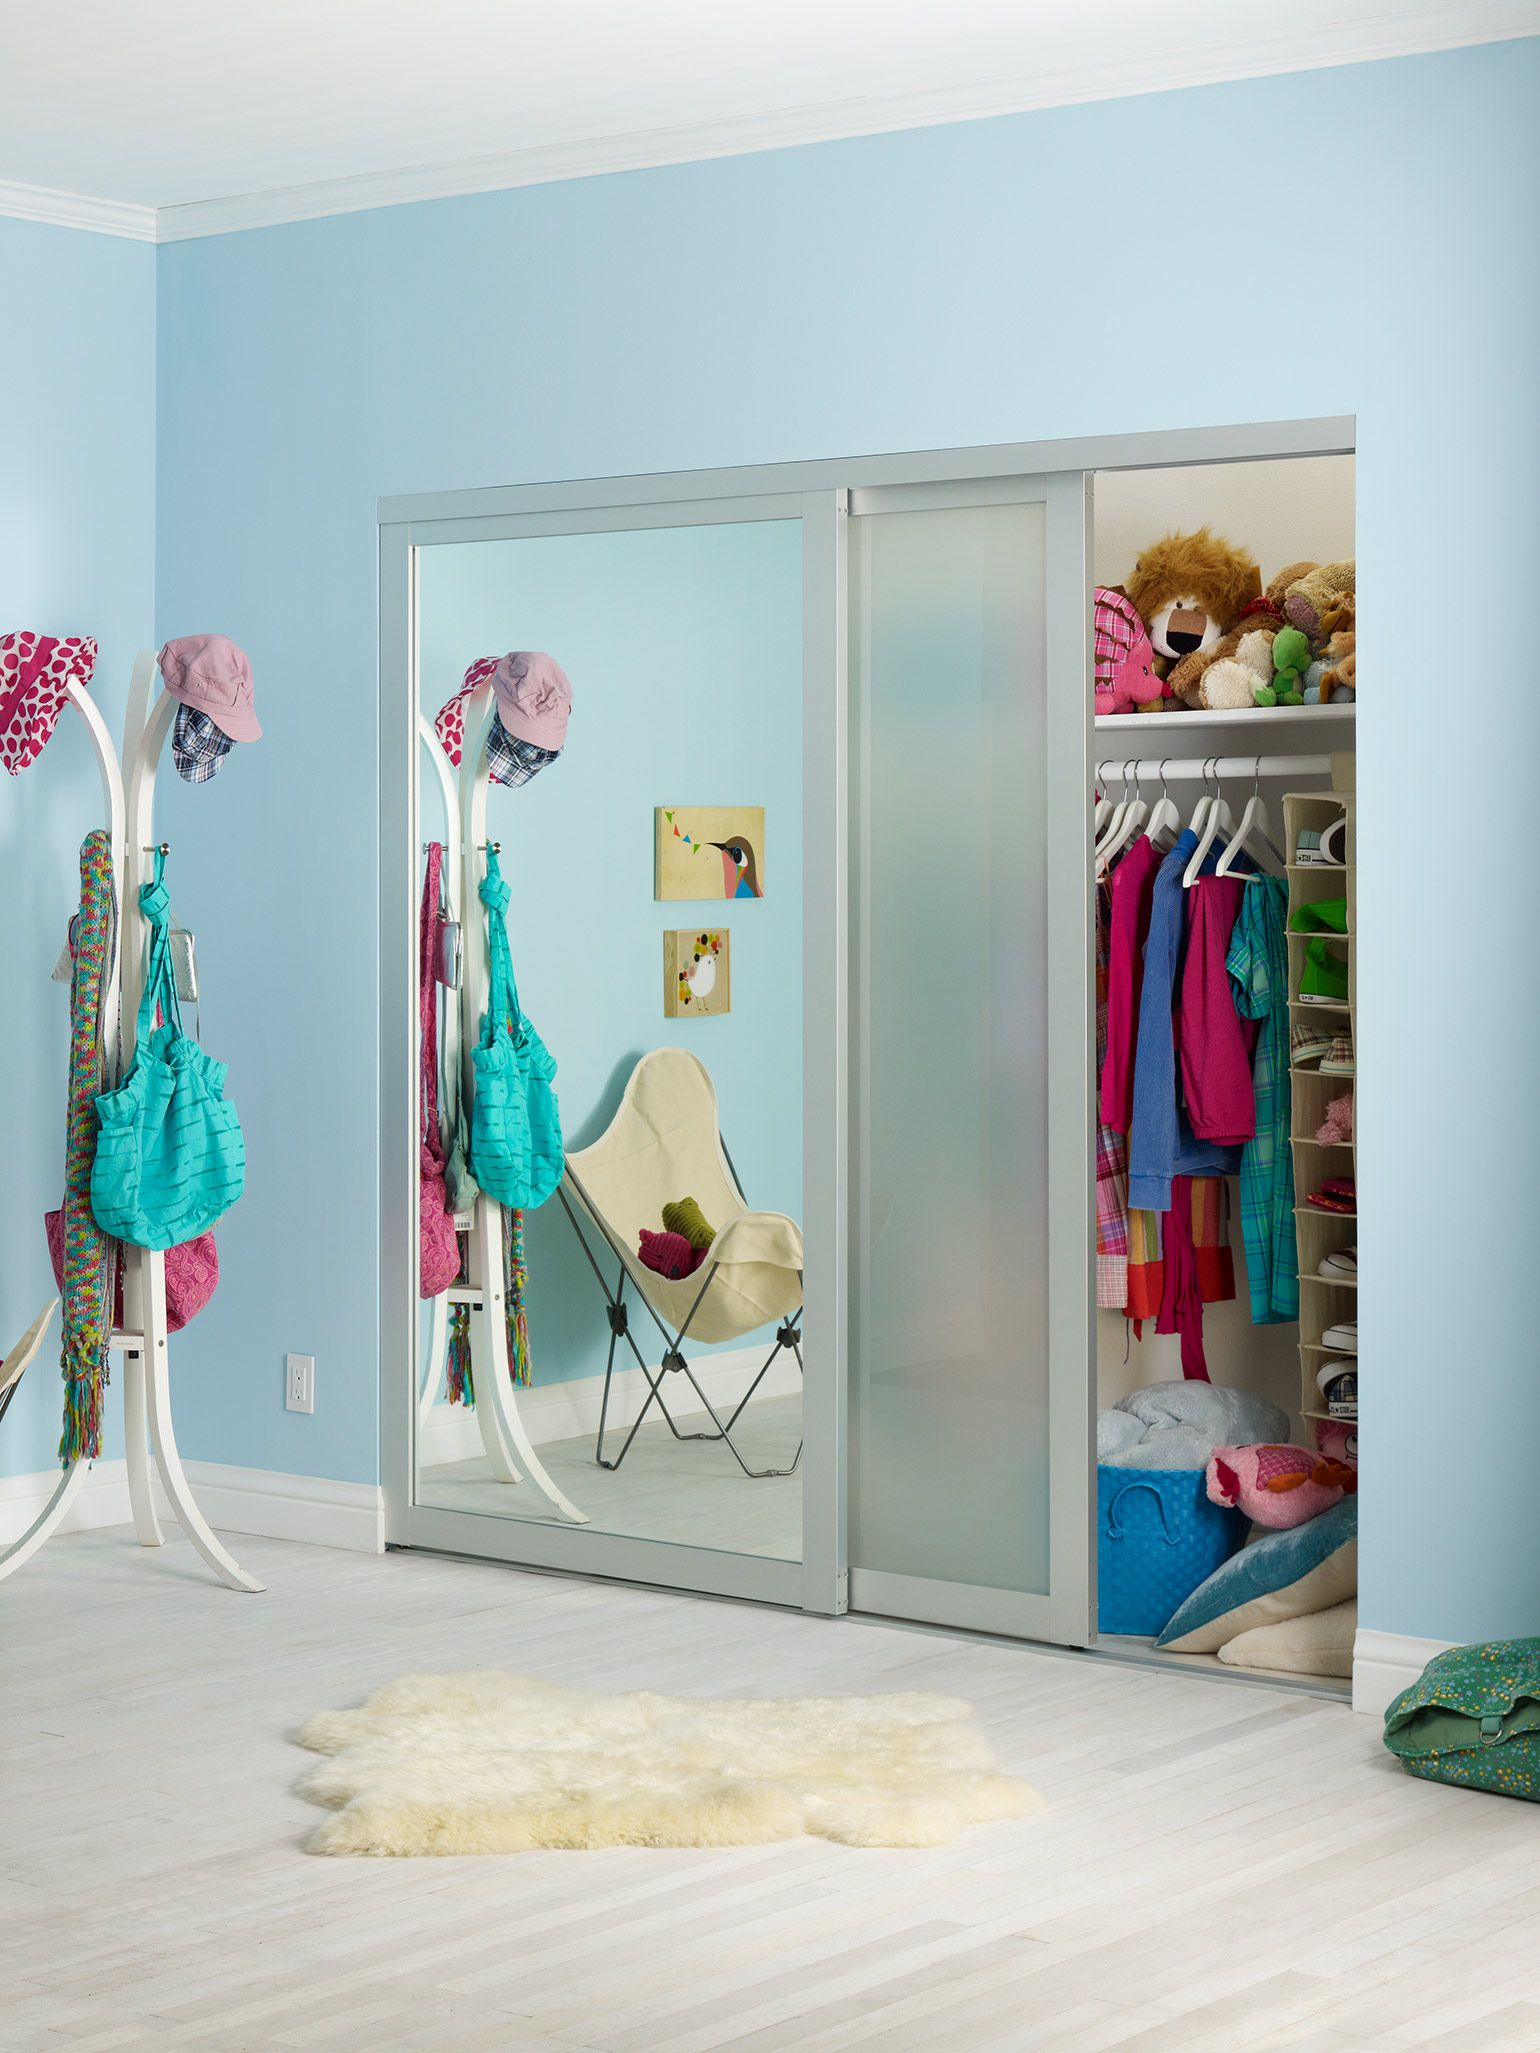 Closet one half mirrored door the other is frosted nursery closet one half mirrored door the other is frosted amipublicfo Choice Image